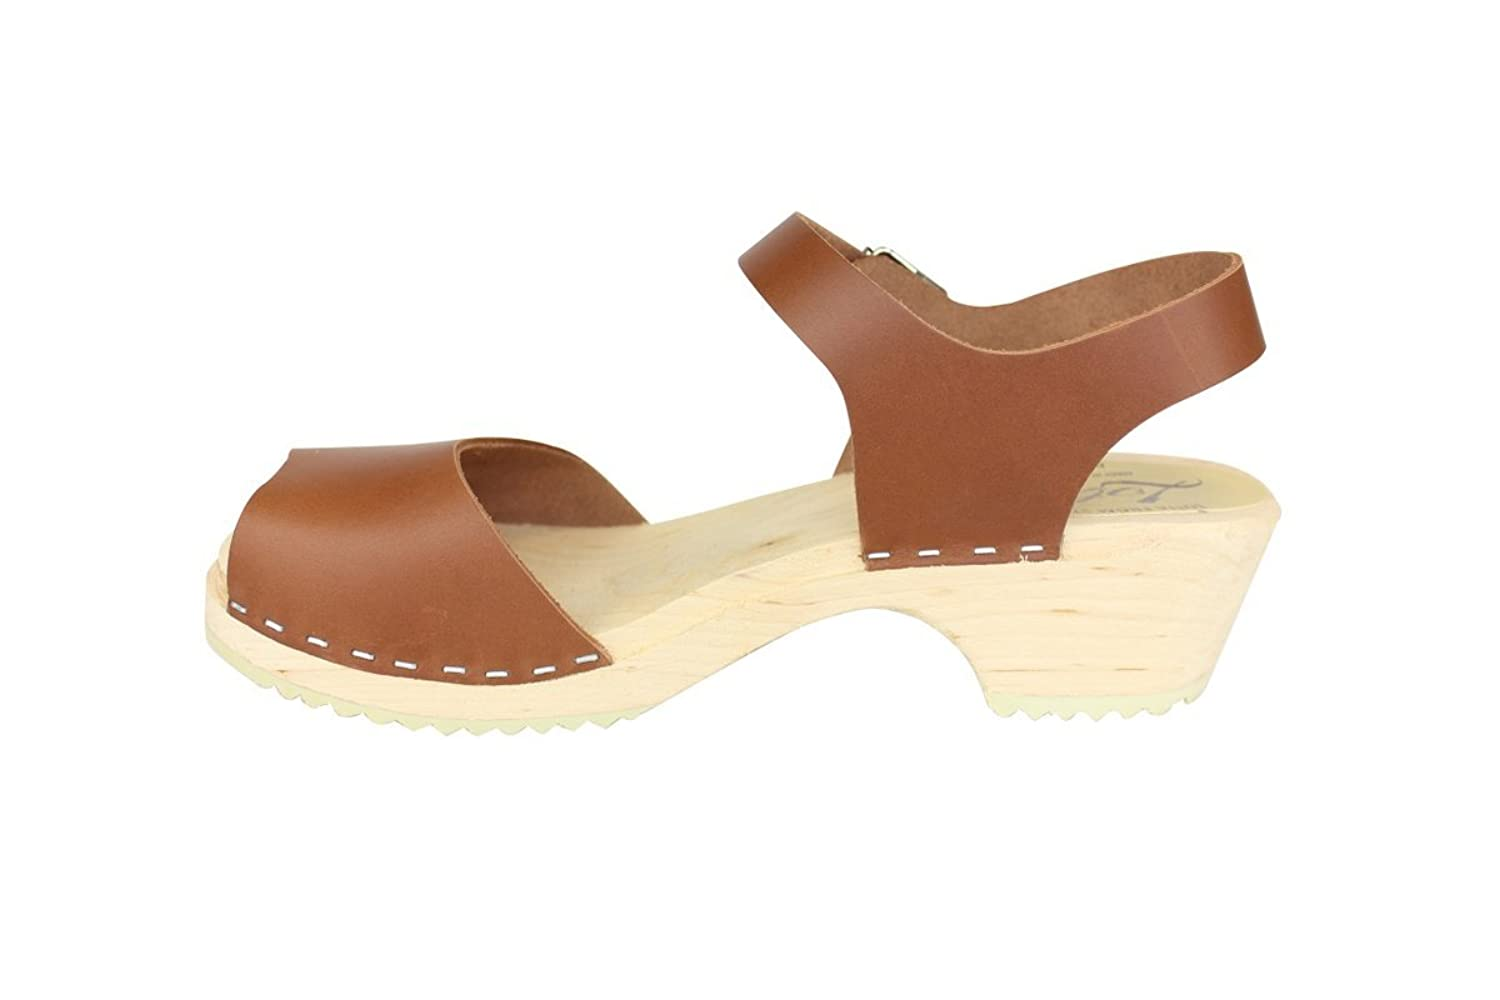 Lotta From Stockholm Low Wood Open Clogs in Tan: Amazon.co.uk: Shoes & Bags